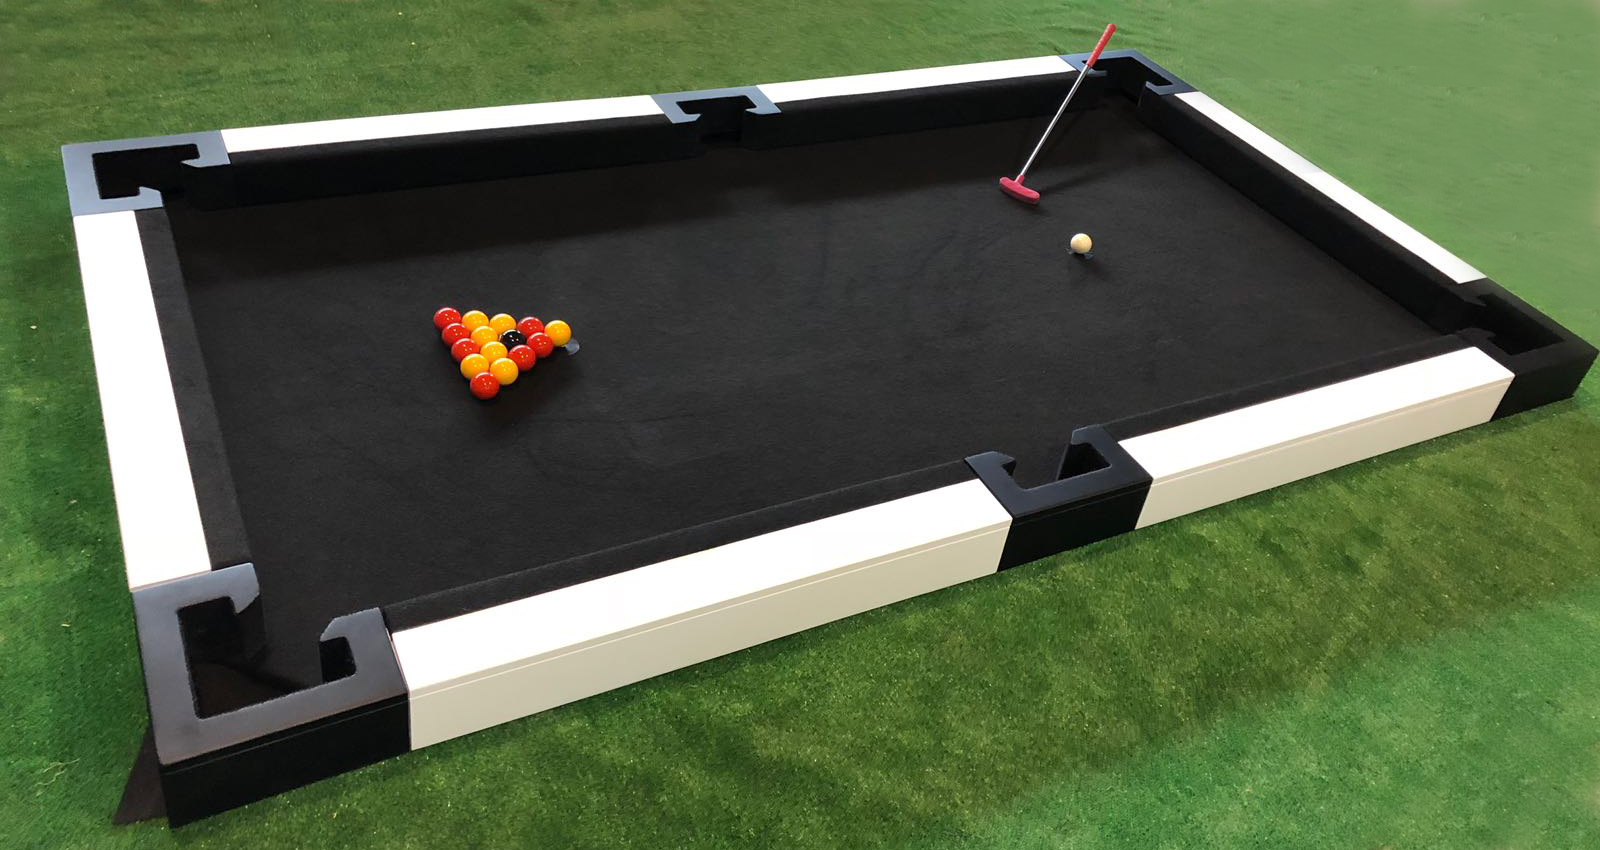 SnookerGolf